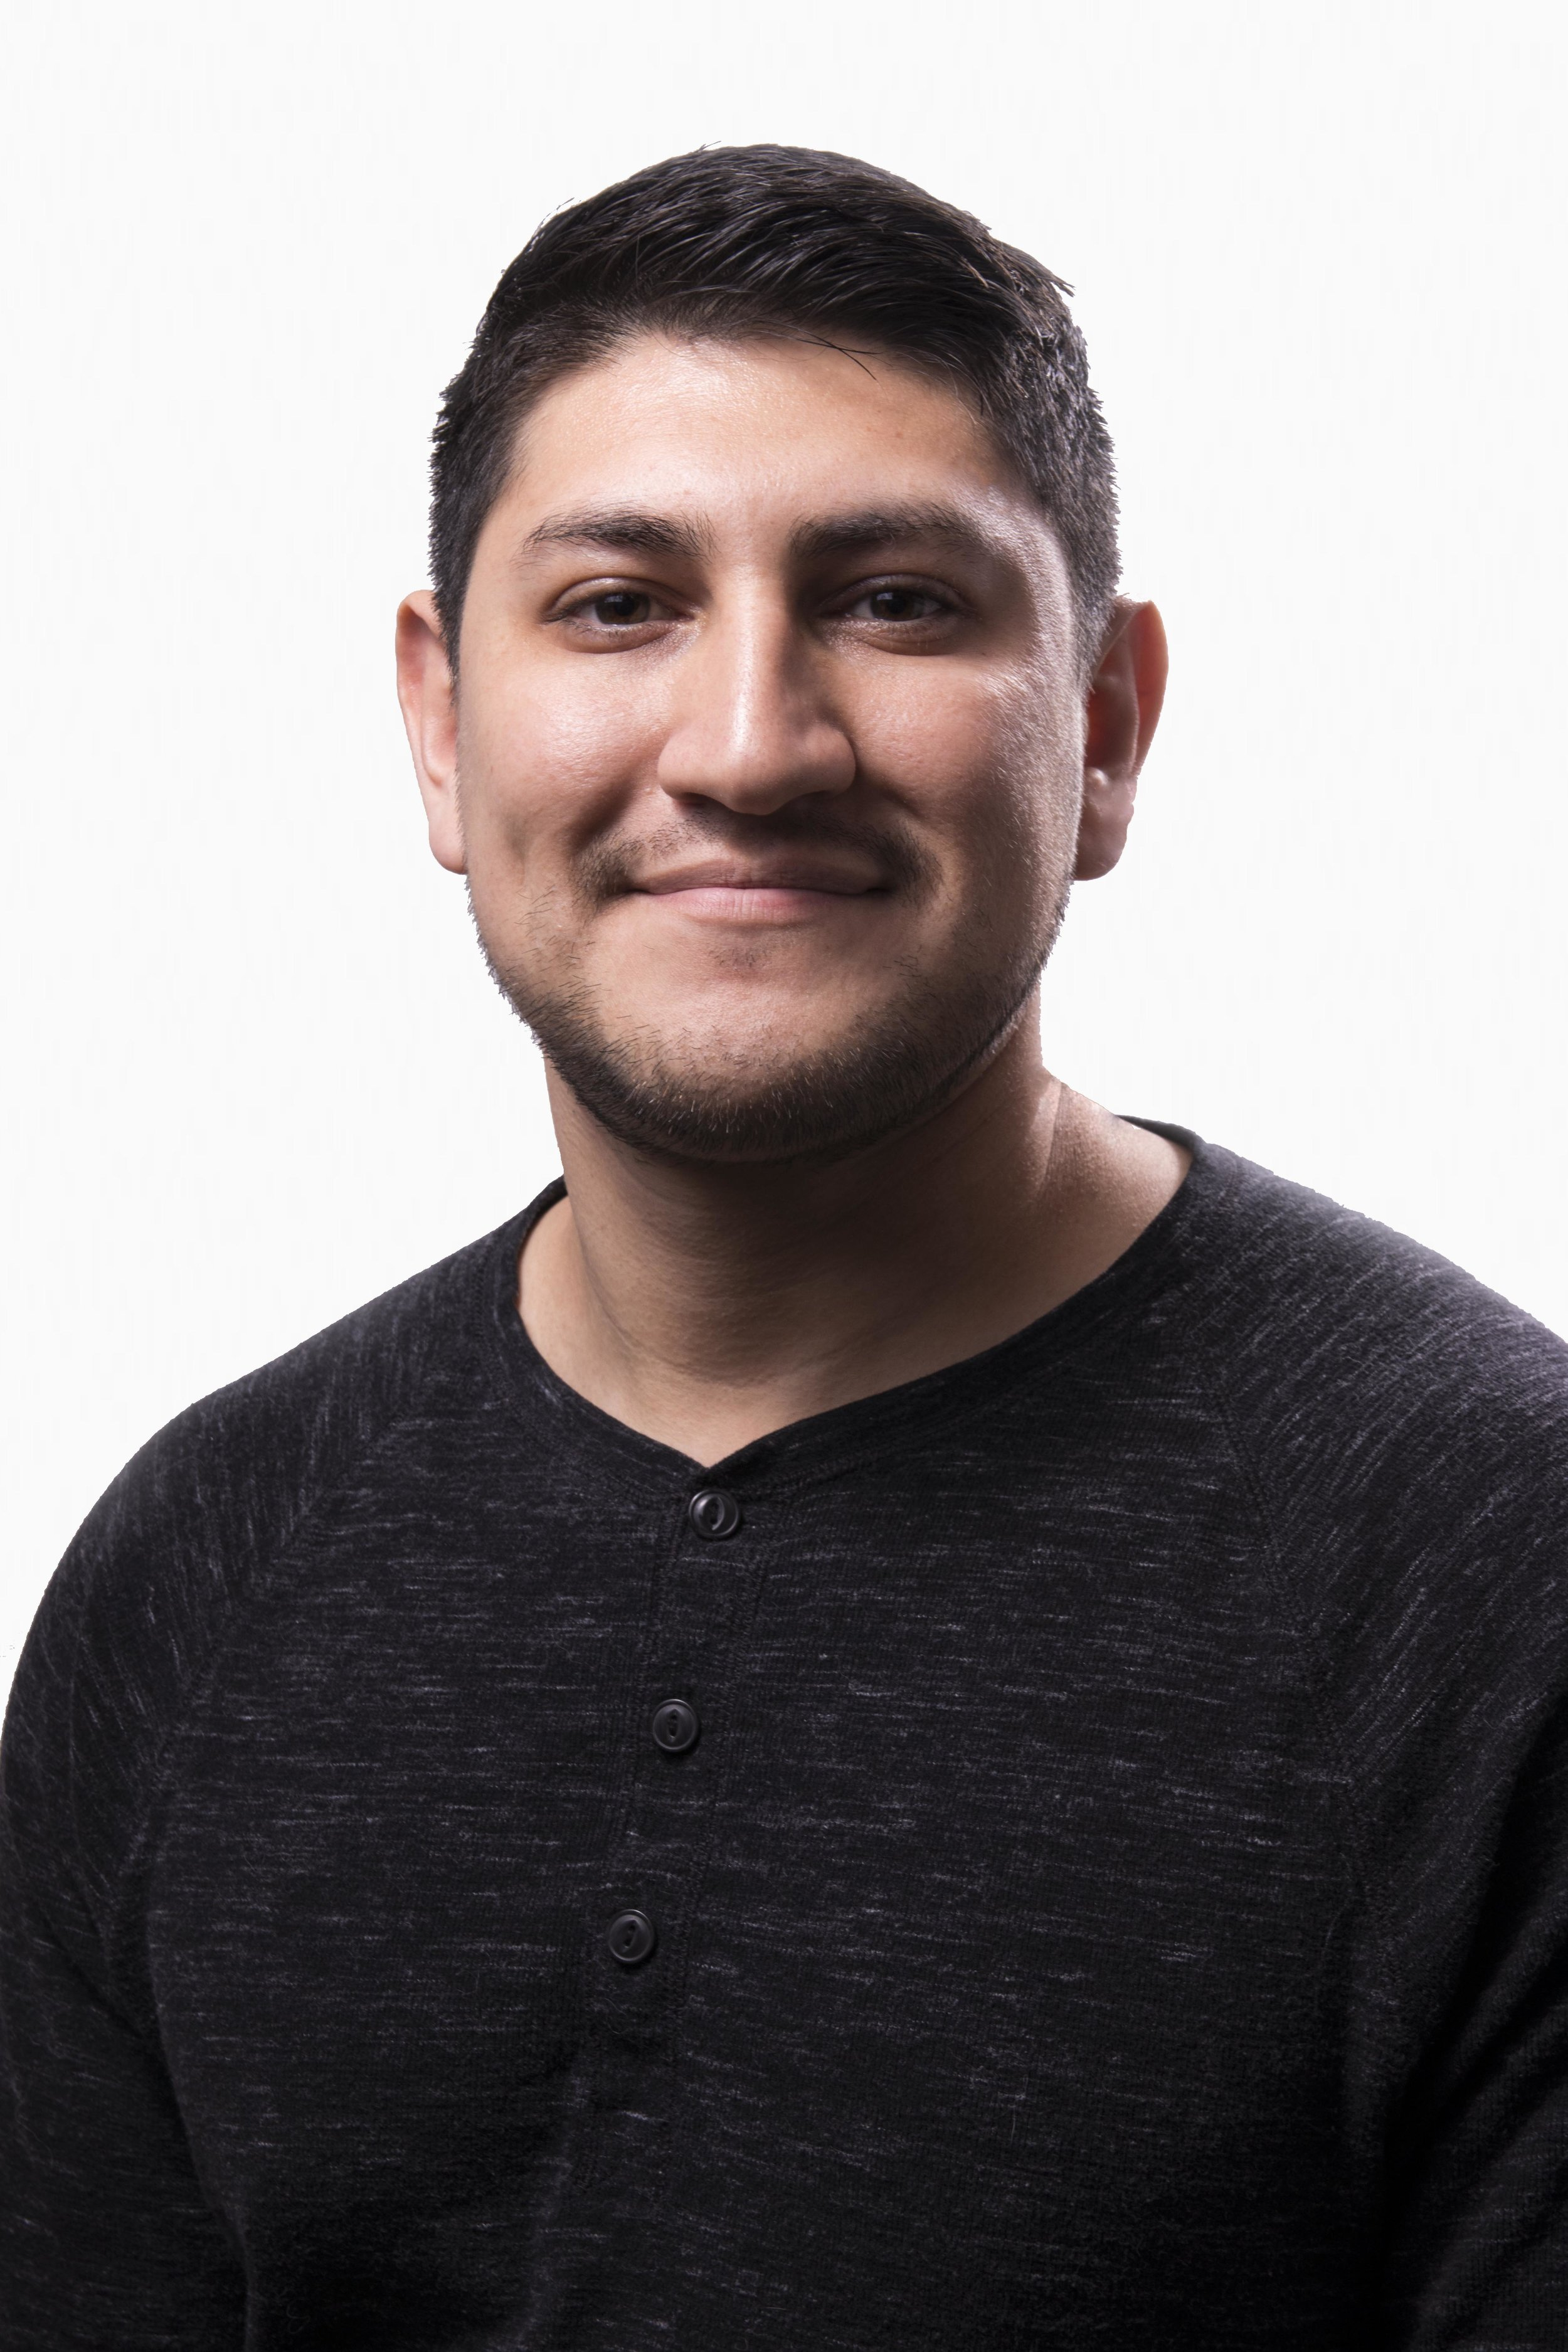 Dillon Rodriguez - Sales ConsultantDillon, a military veteran and a business owner, is very passionate about connecting businesses with the ideal solution that helps them grow.